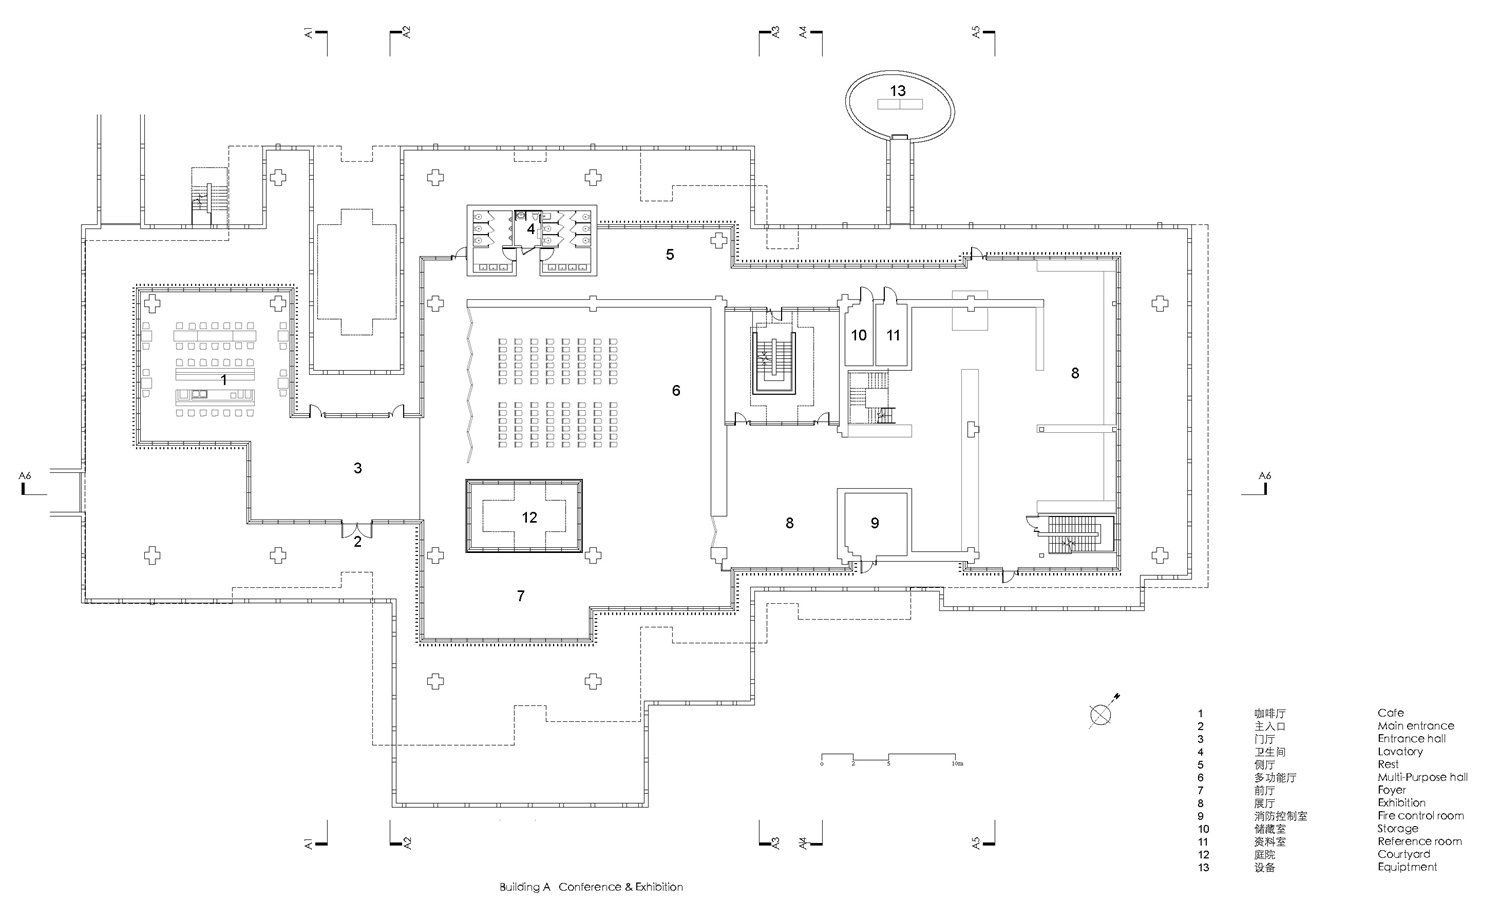 First Floor Plan of  building A( Conference&Exhibition) Atelier Z+}